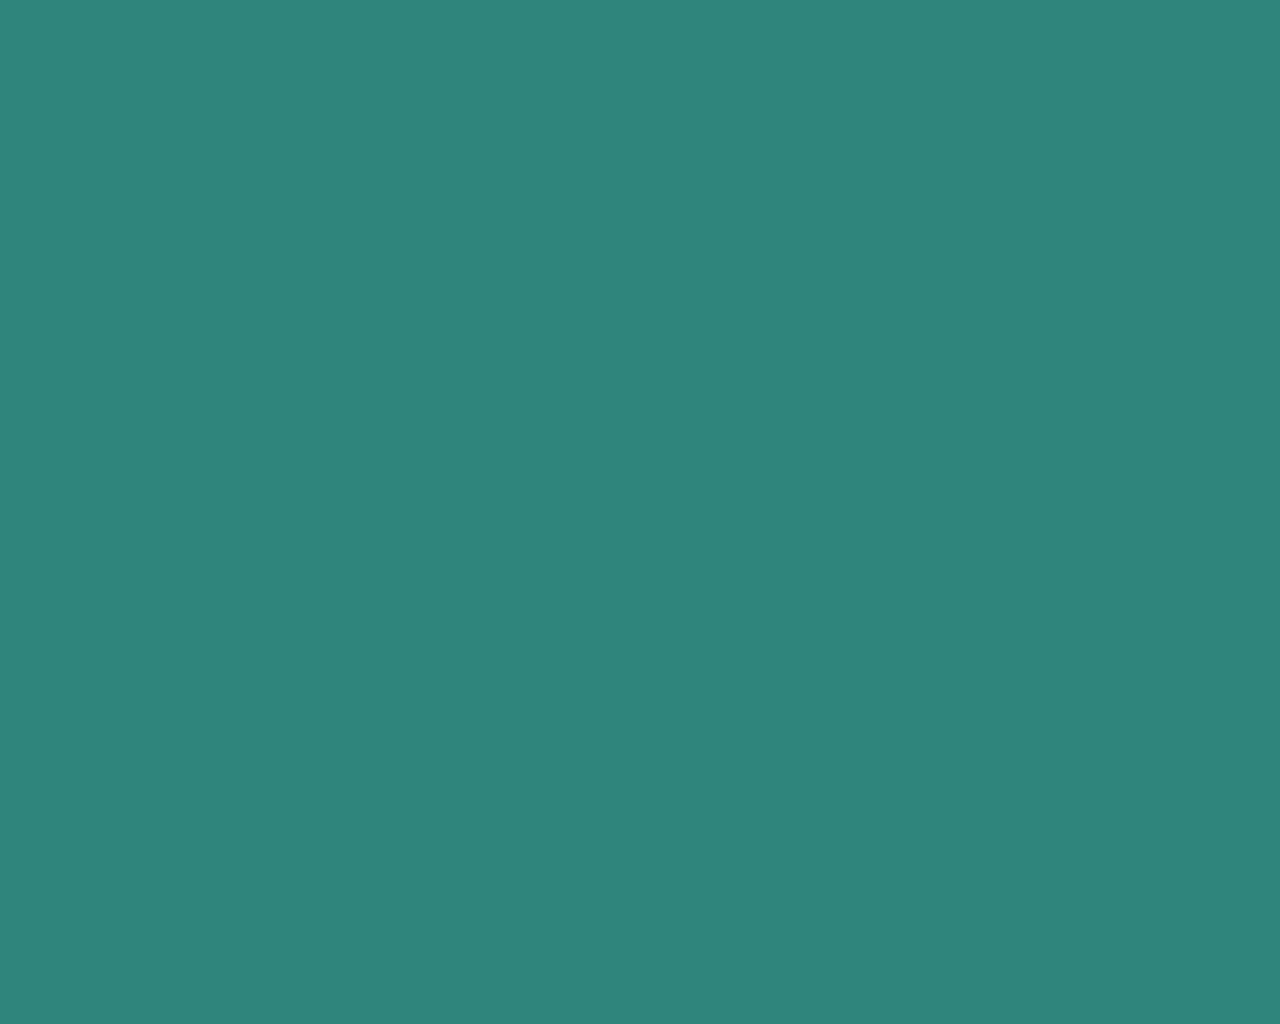 1280x1024 Celadon Green Solid Color Background